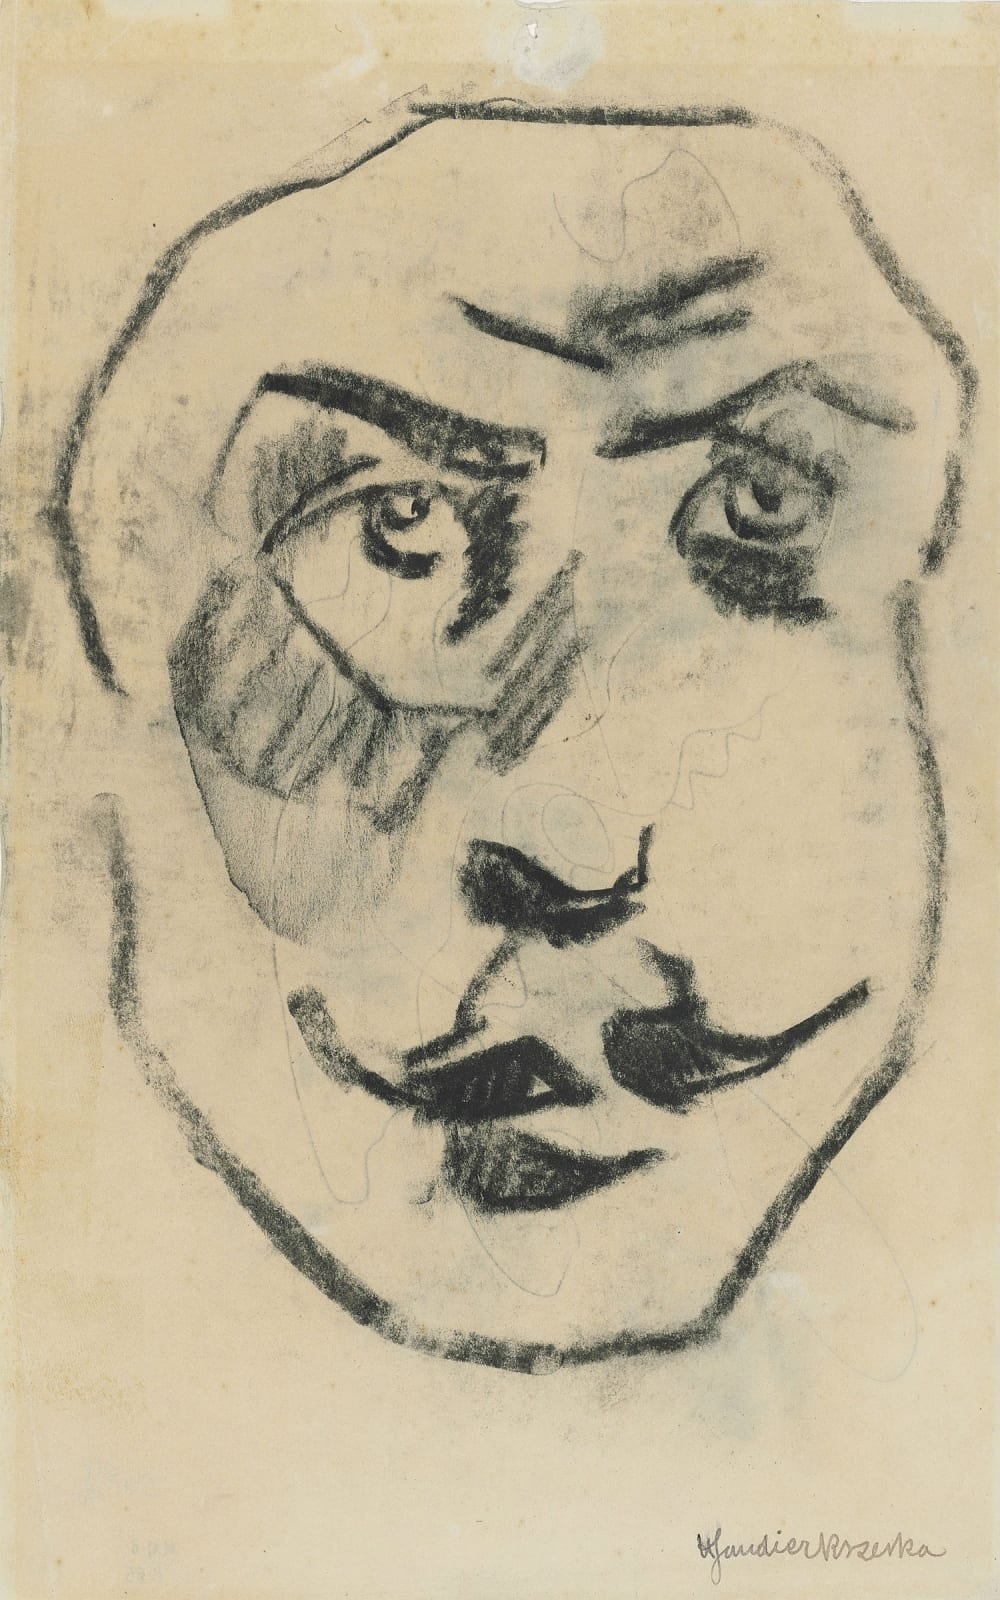 Henri Gaudier-Brzeska Sculptural Head of Brodzky, c. 1913, Black chalk on paper 48 x 36cm. Ben Uri Collection Purchased at Christie's London in March 2018 through the support of three great friends of Manya Igel in her honour